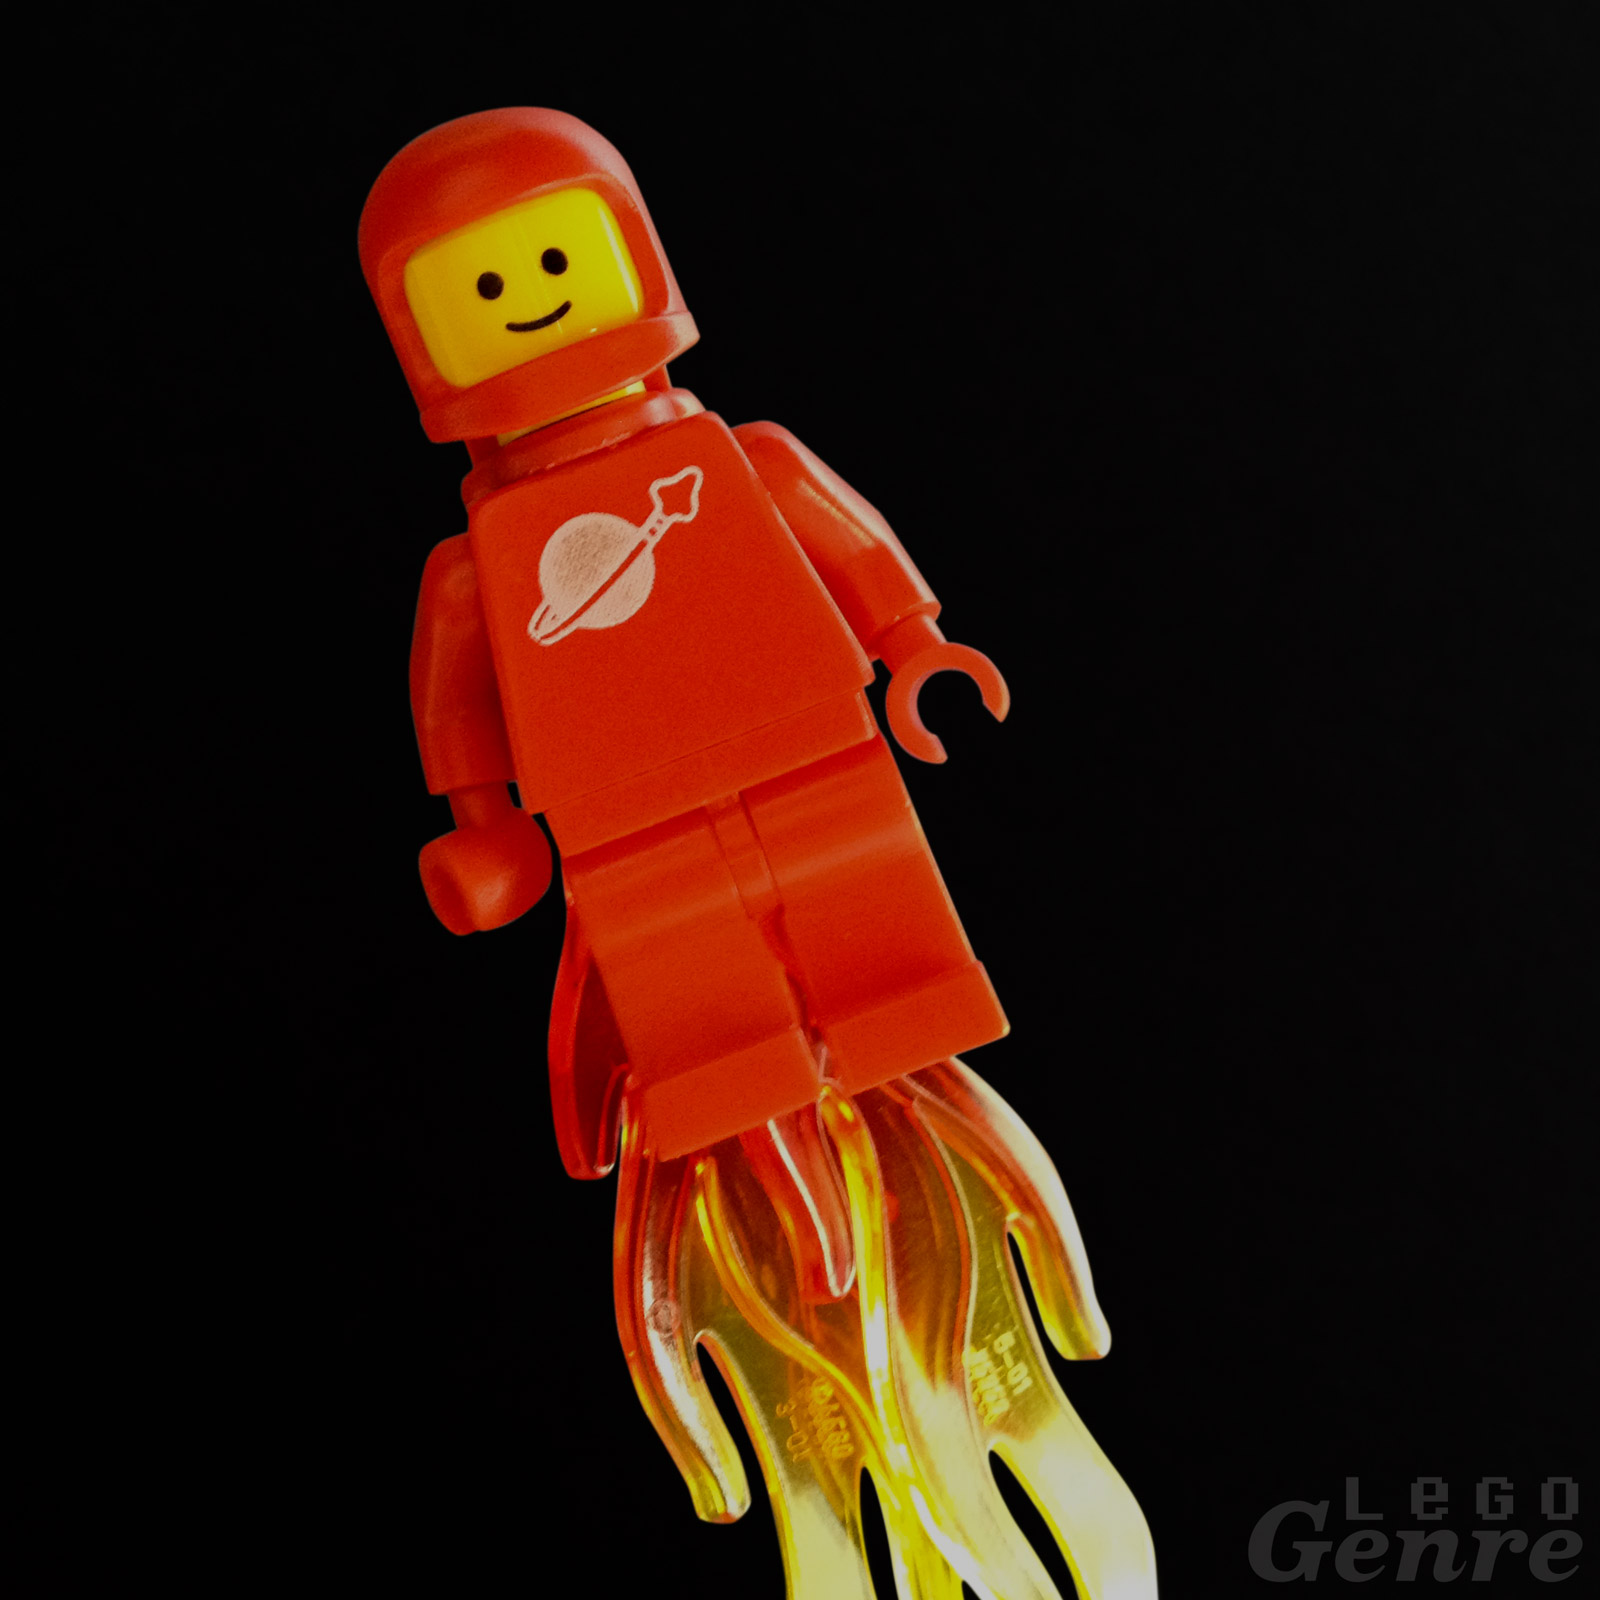 LegoGenre 00370: This Thing Actually Works?